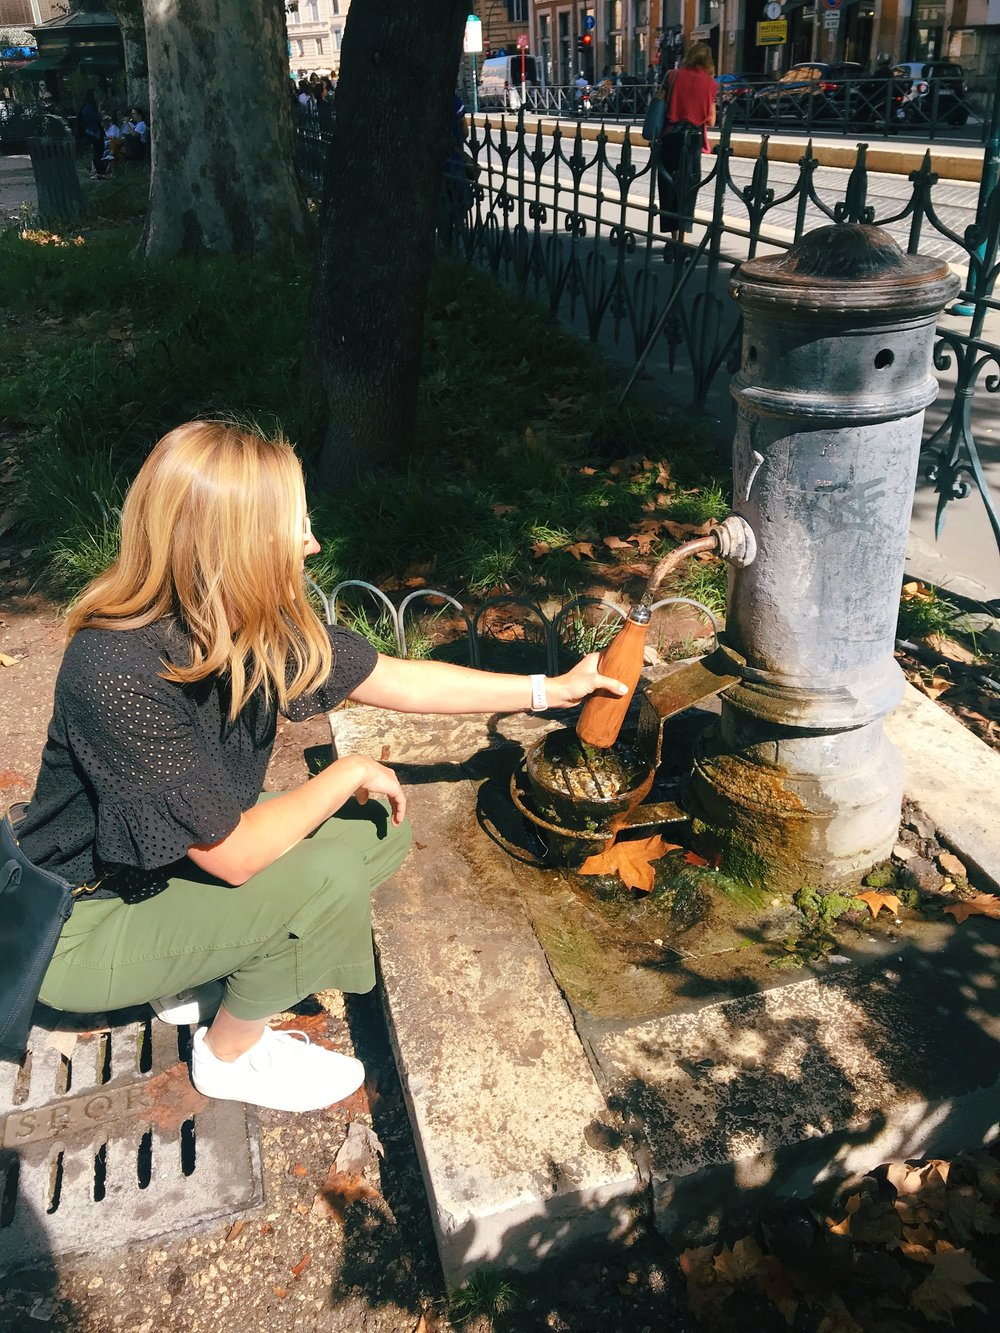 Me filling up my Swell bottle at a fountain in Rome, Italy.